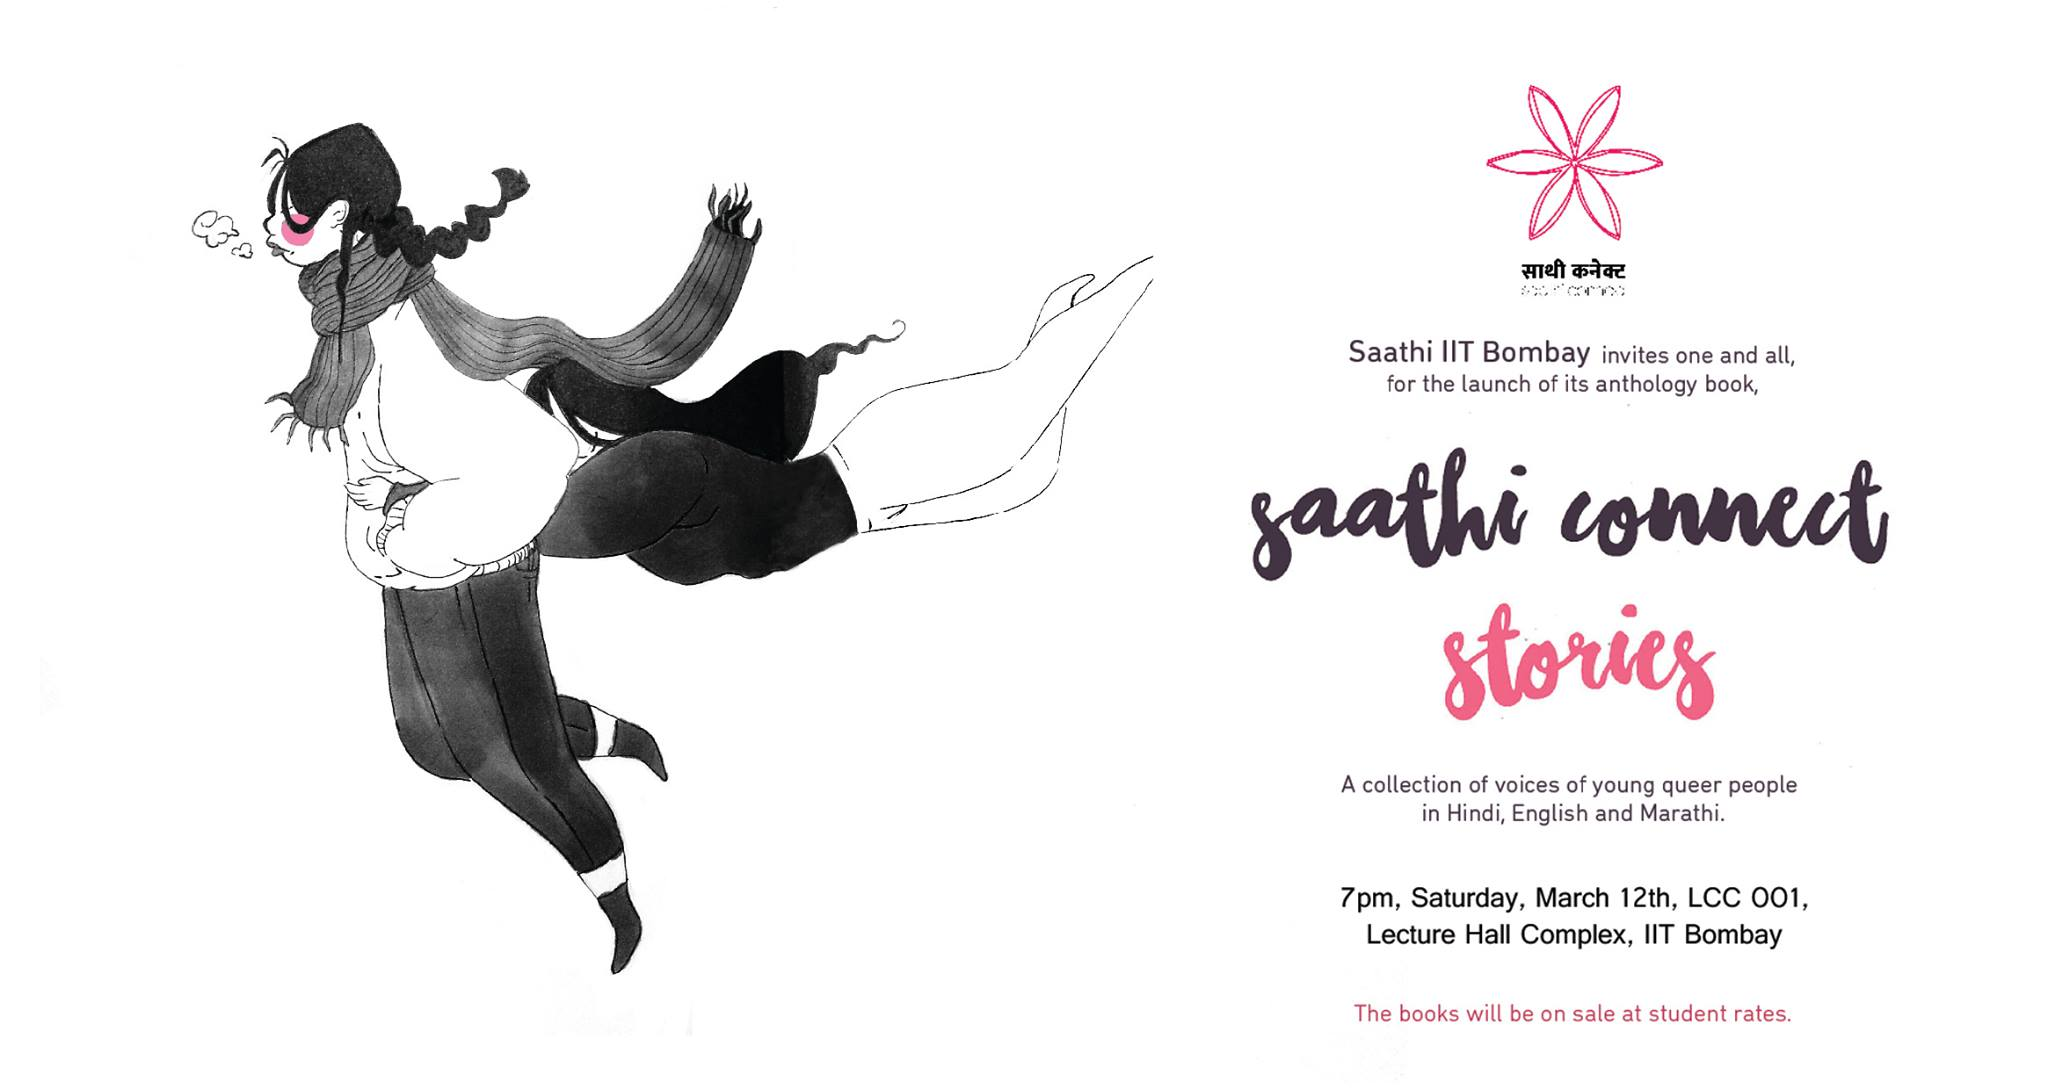 Connect Stories By Saathi Connect | Book Launch